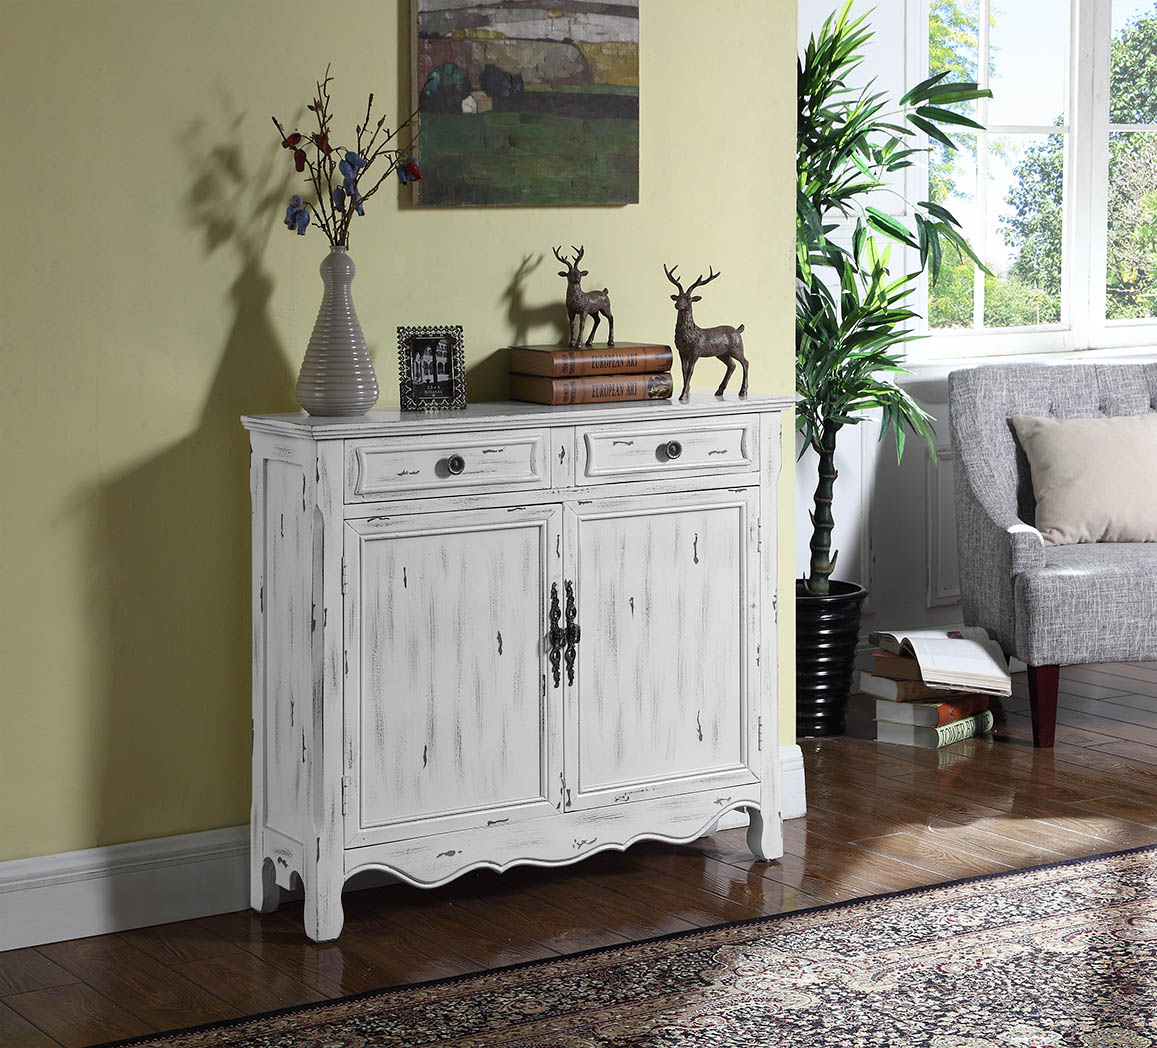 Coaster Accent Cabinet in Distressed White